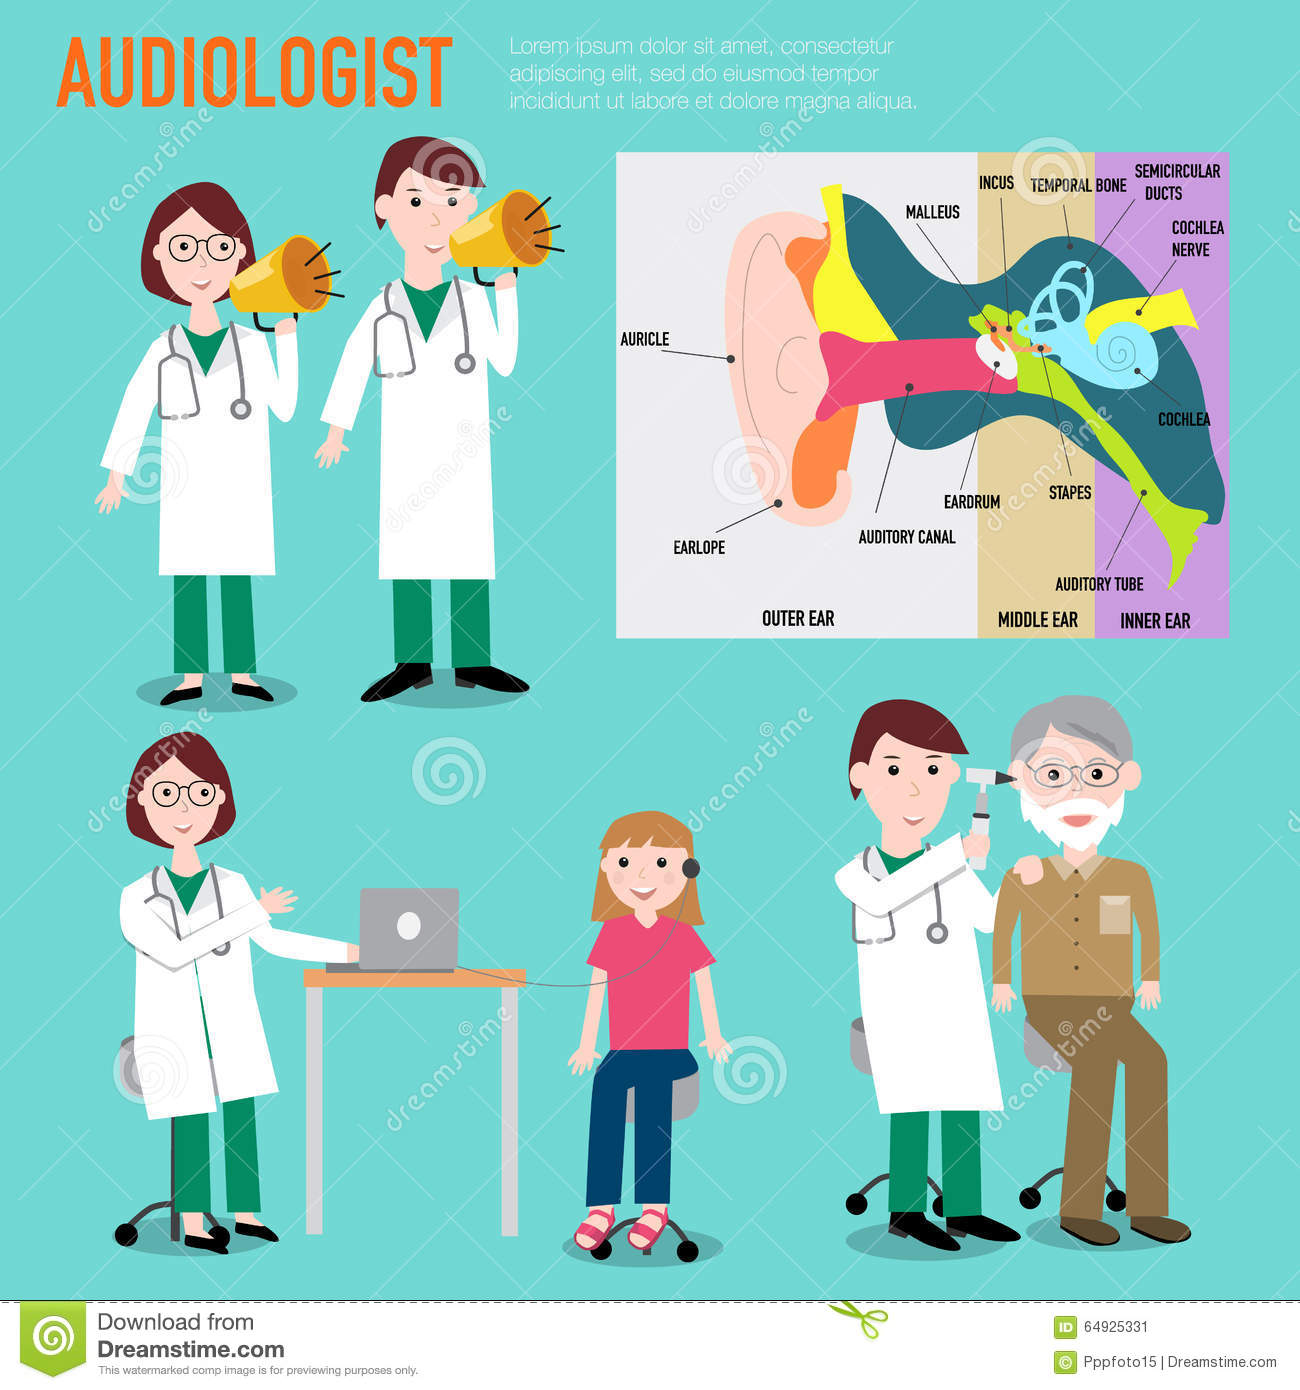 Audiologist Audiology Anatomy Of Ear Vector Infographic Stock